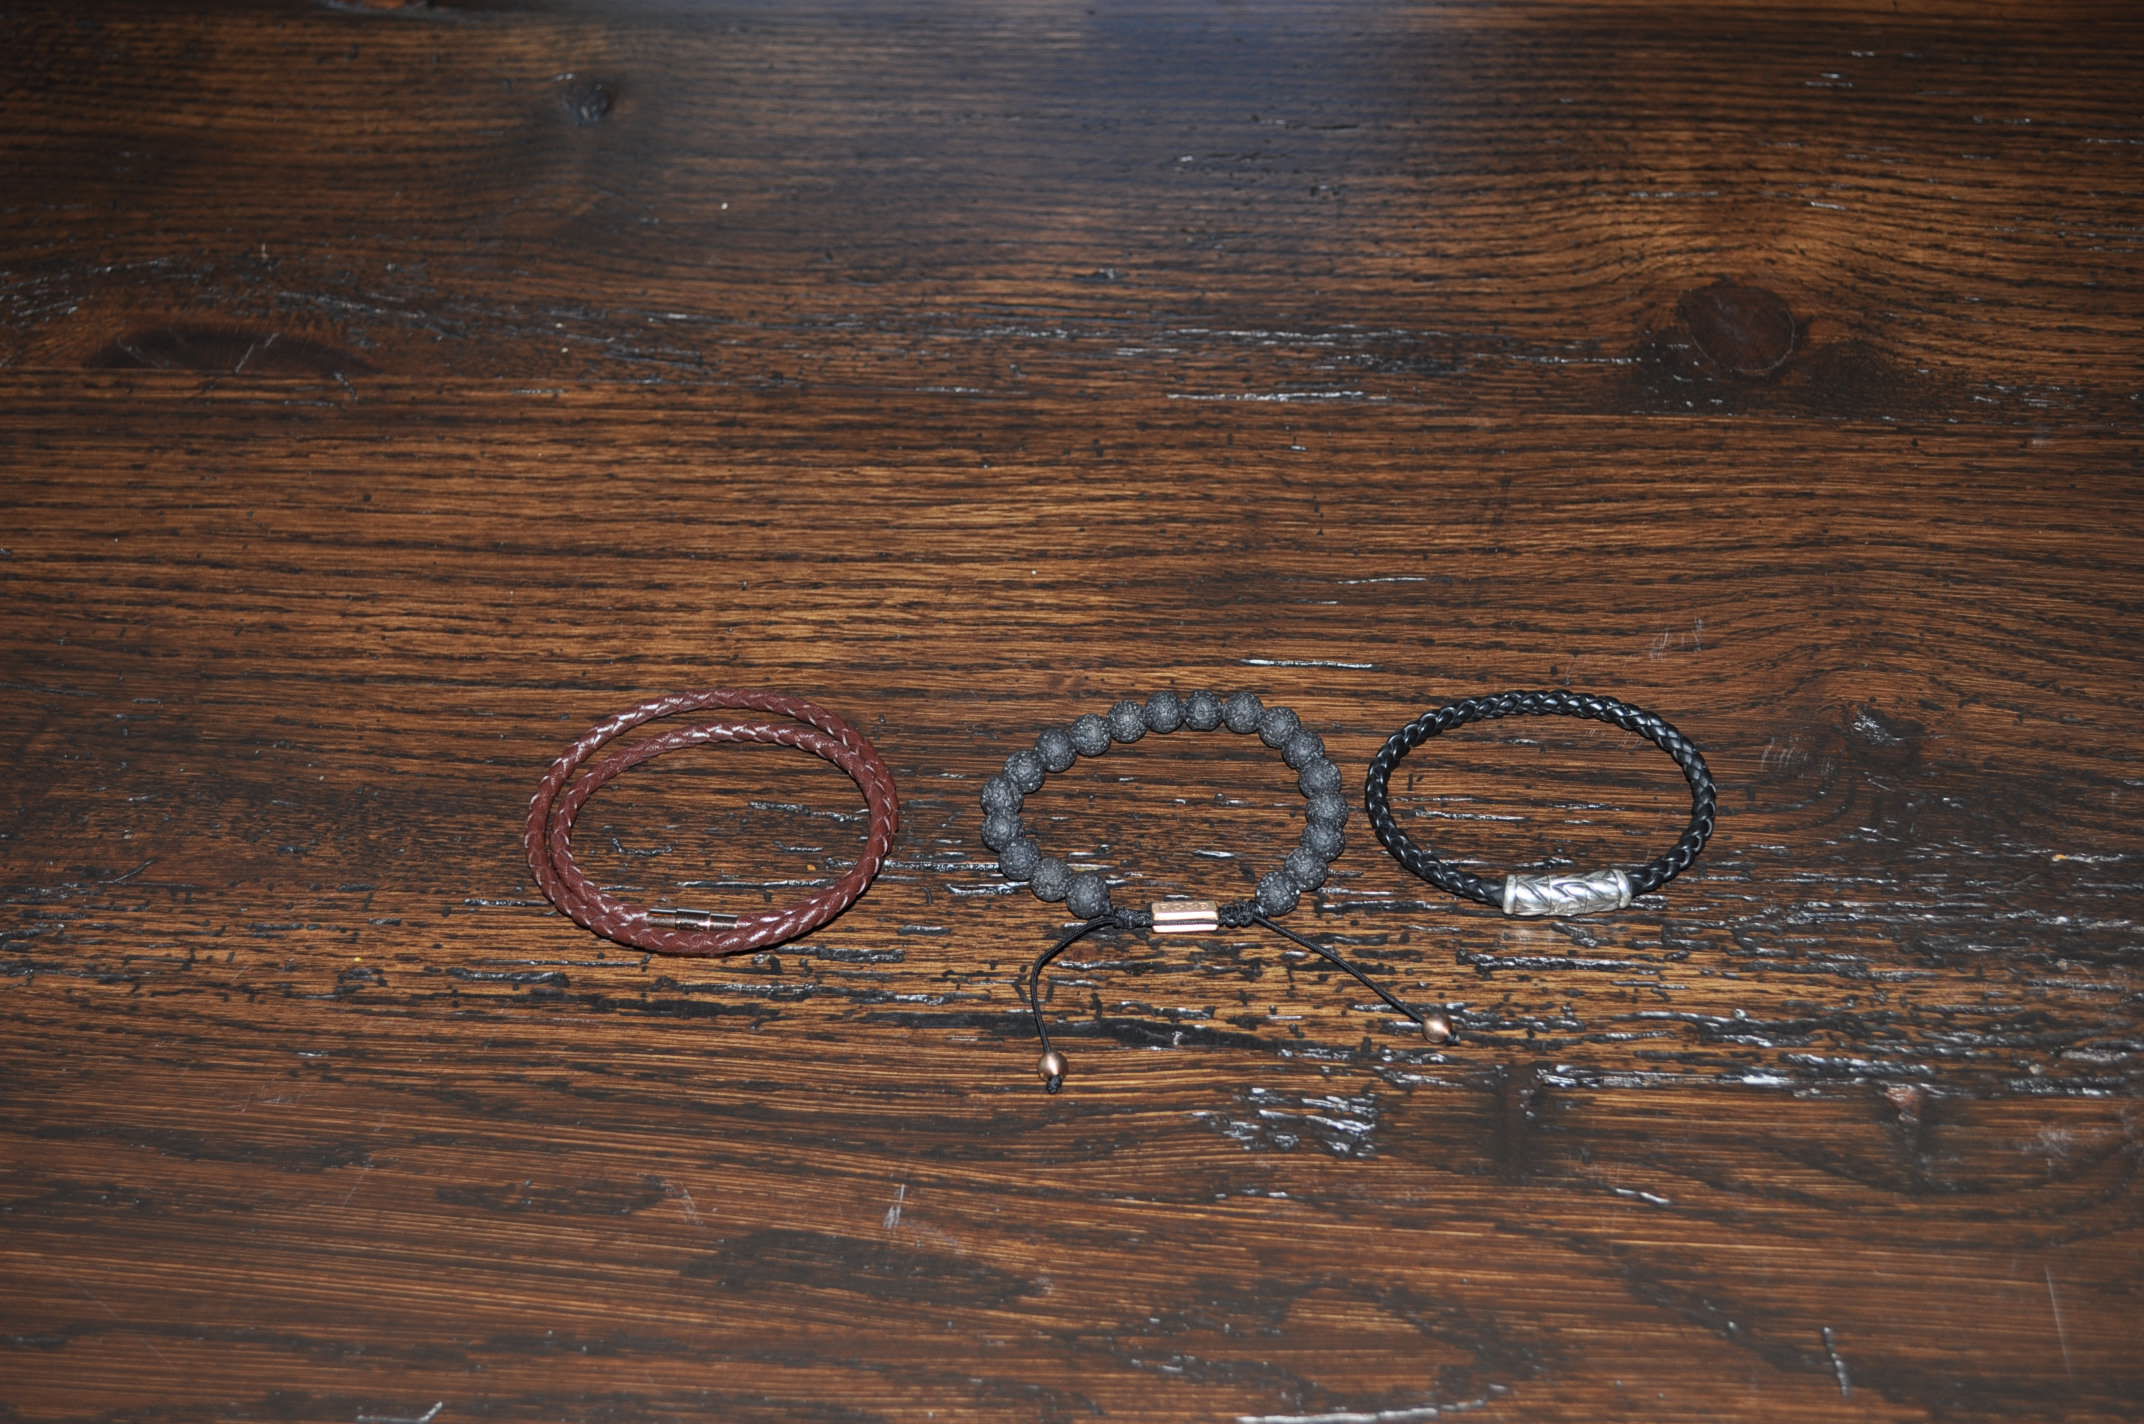 These are the only 3 man bracelets, or